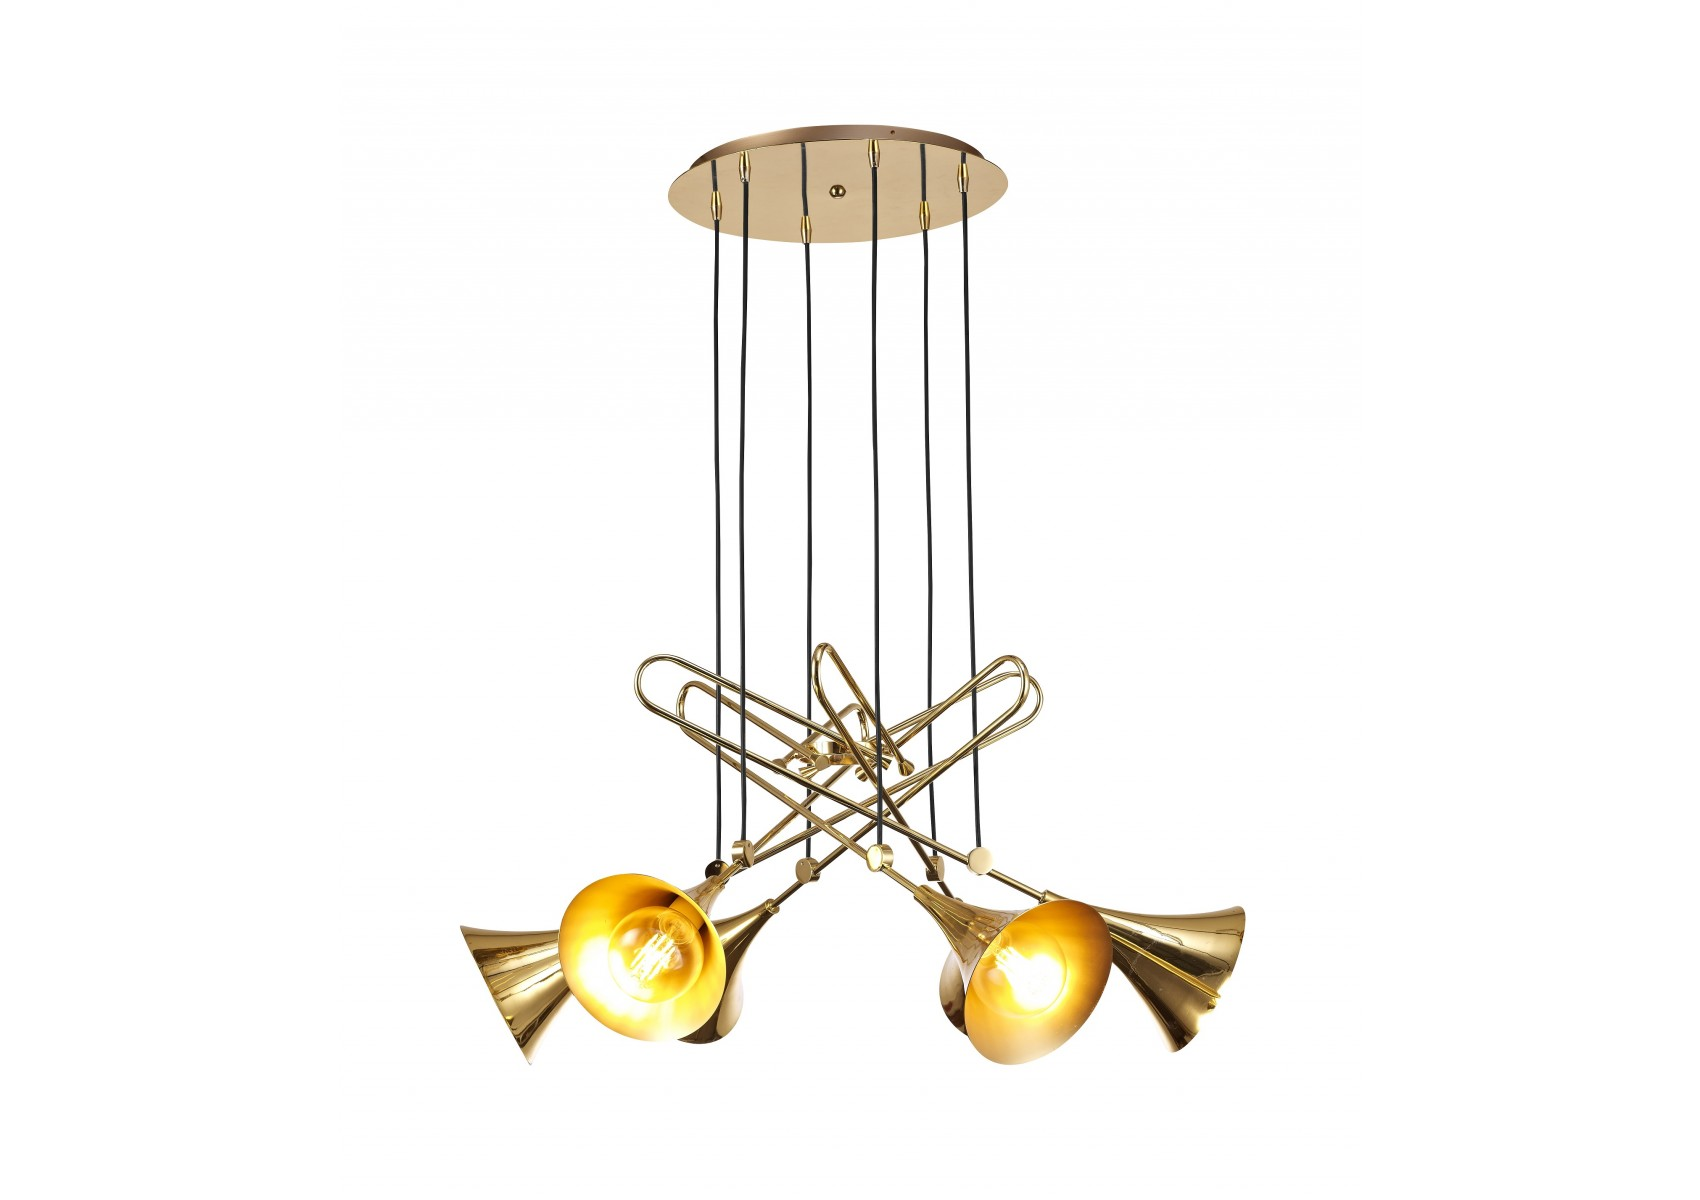 Grande Suspension Luminaire Luminaire Suspension Grande Taille Luminaire Suspension